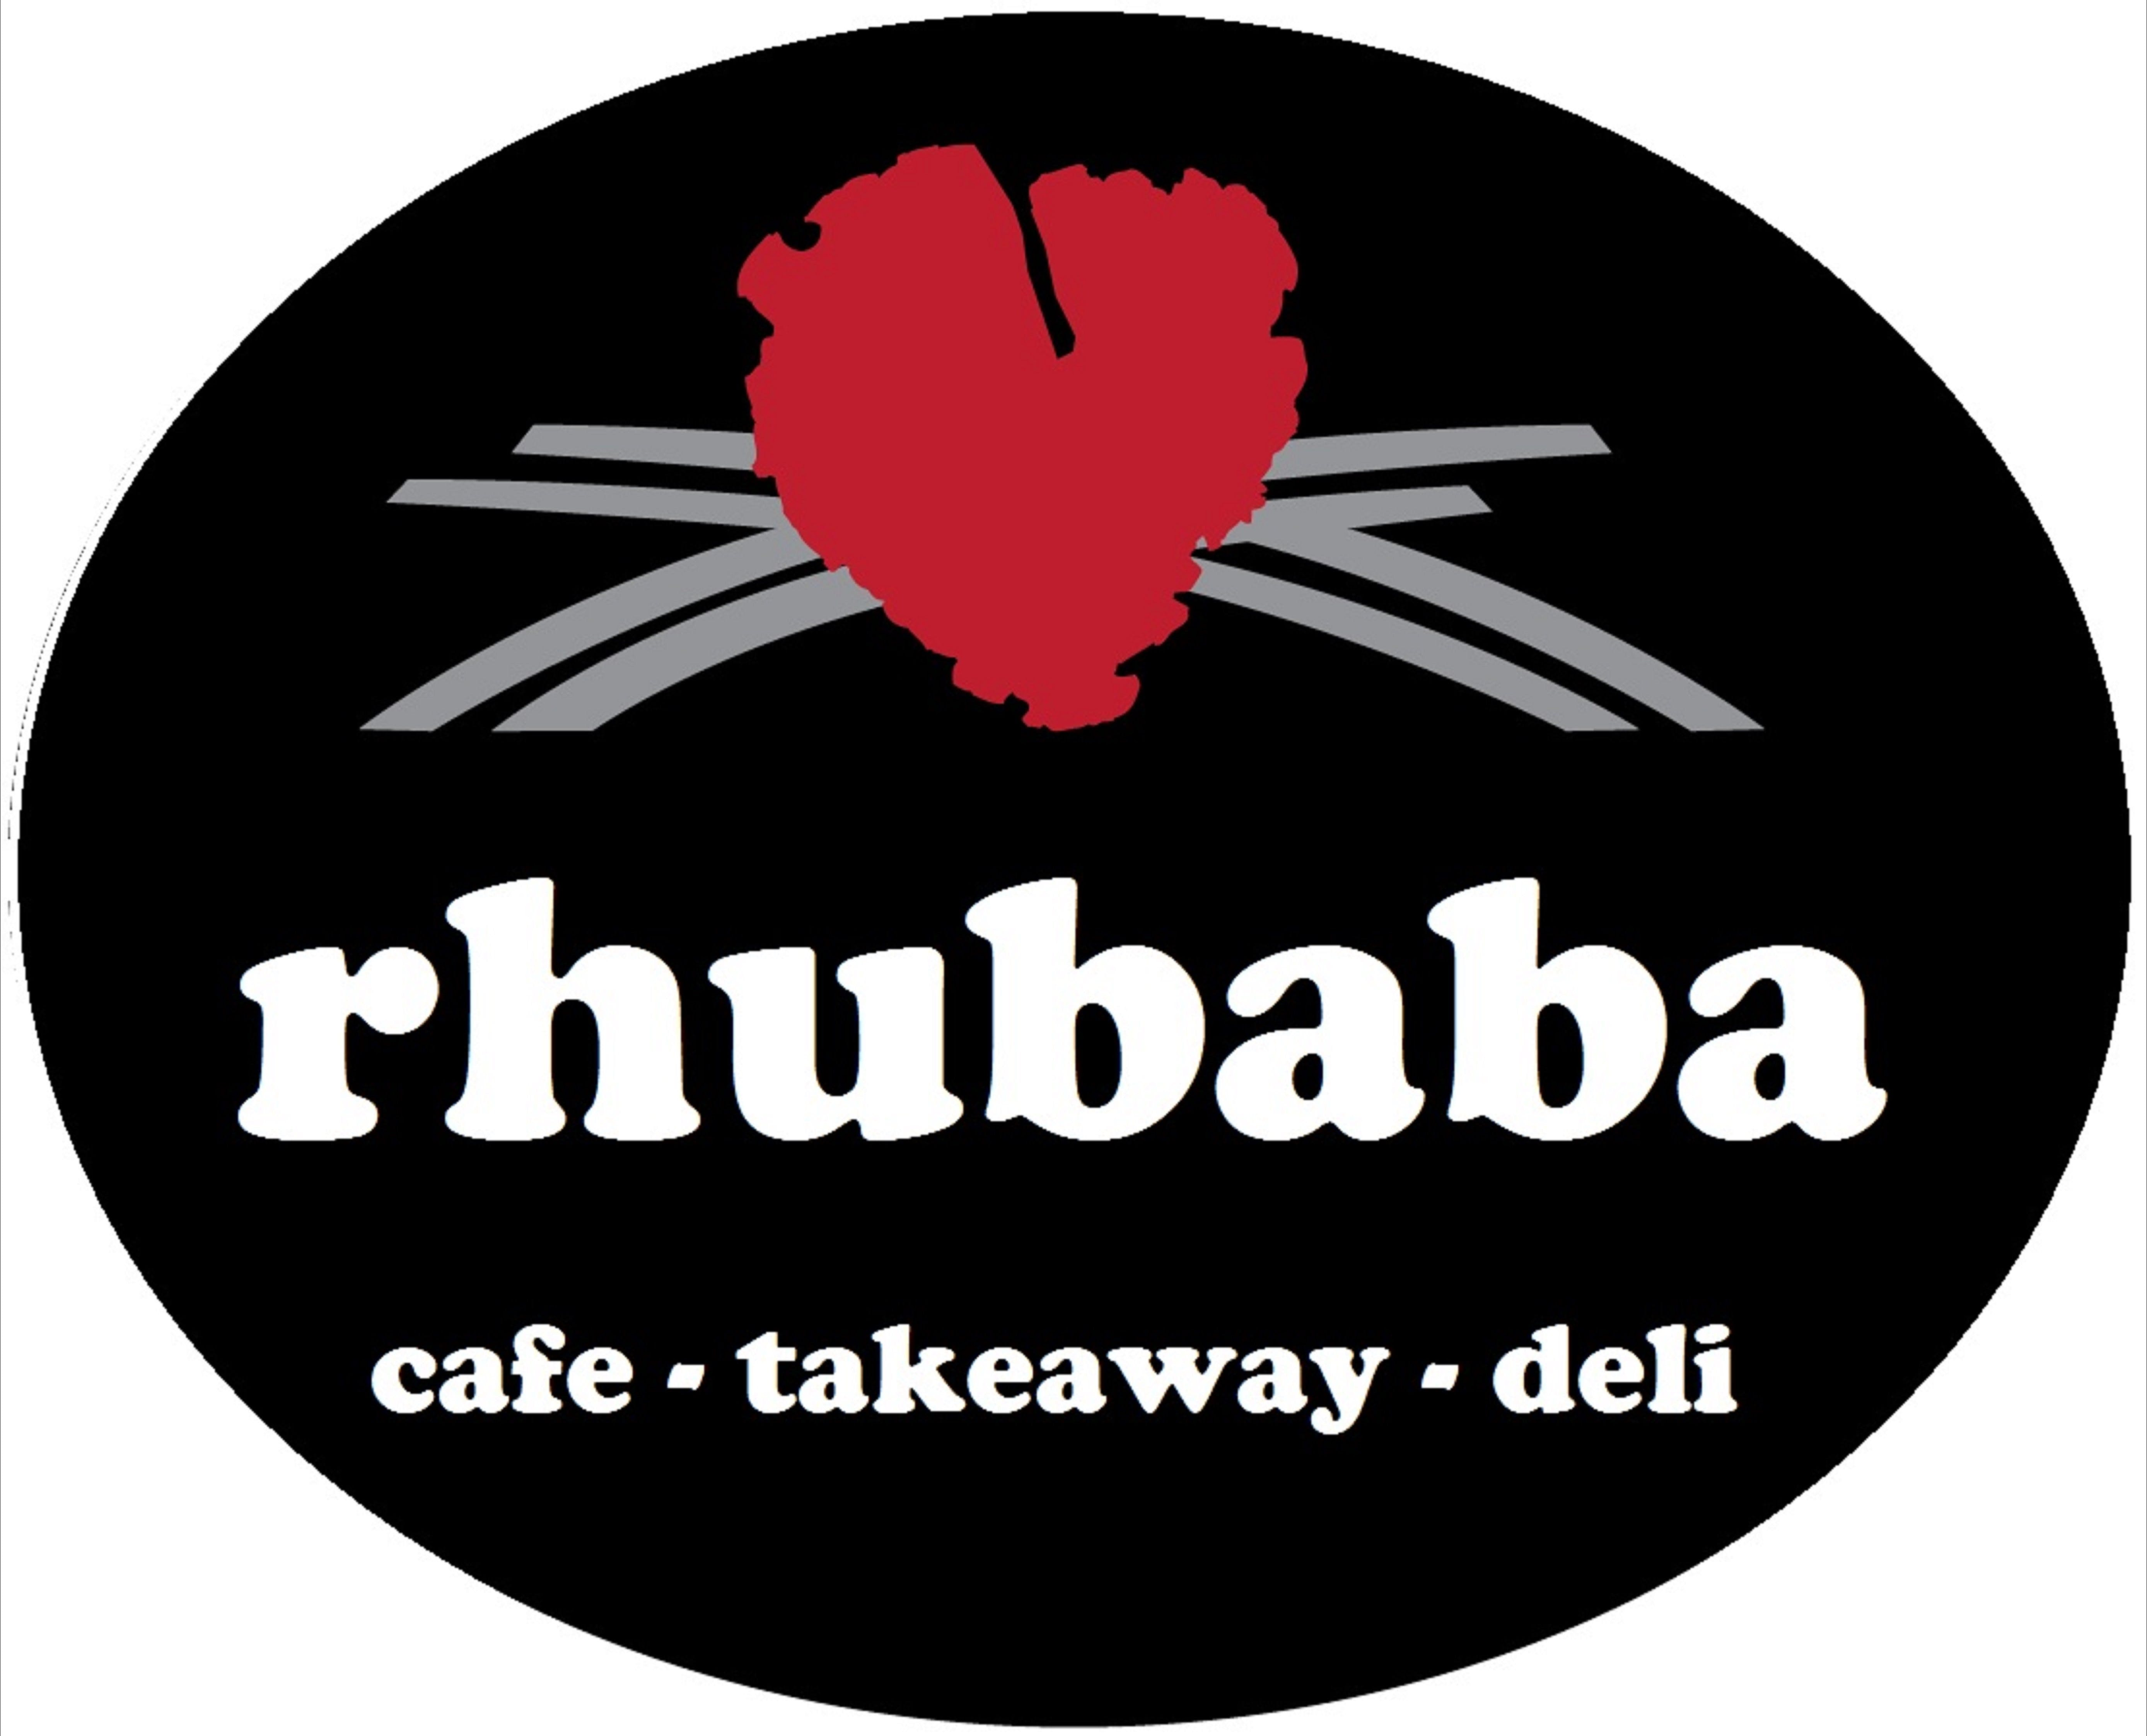 House of Rhubarb - Attractions Perth